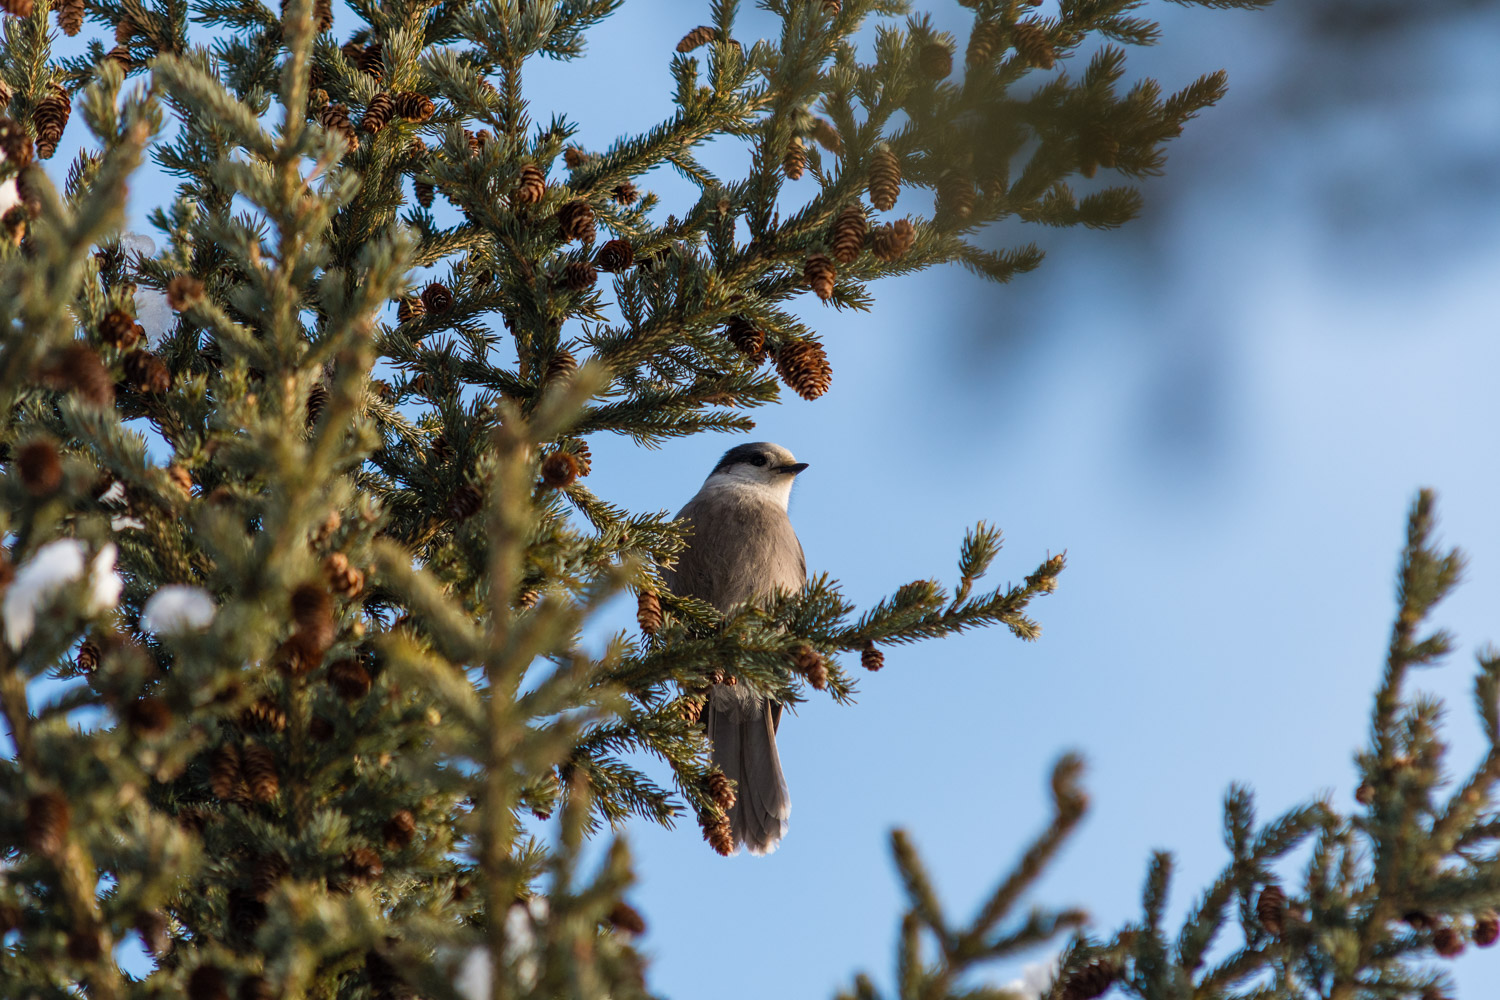 I photographed a bird. A whisky Jack I think? I know nothing about birds to be honest.